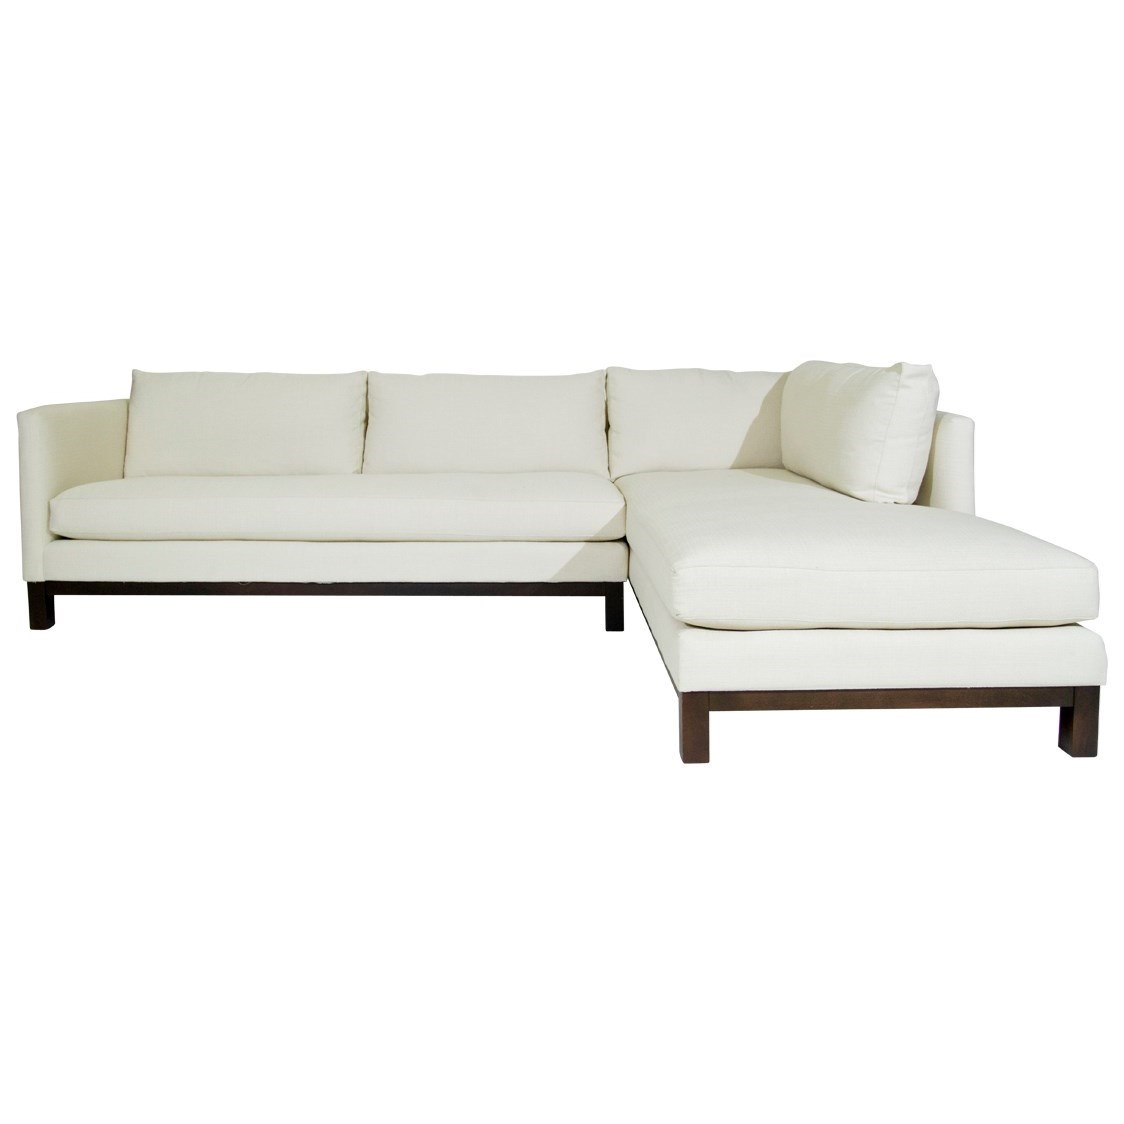 McCreary Modern Ethan Sectional - Item Number: 1061-SLB+DRB-Times Oyster